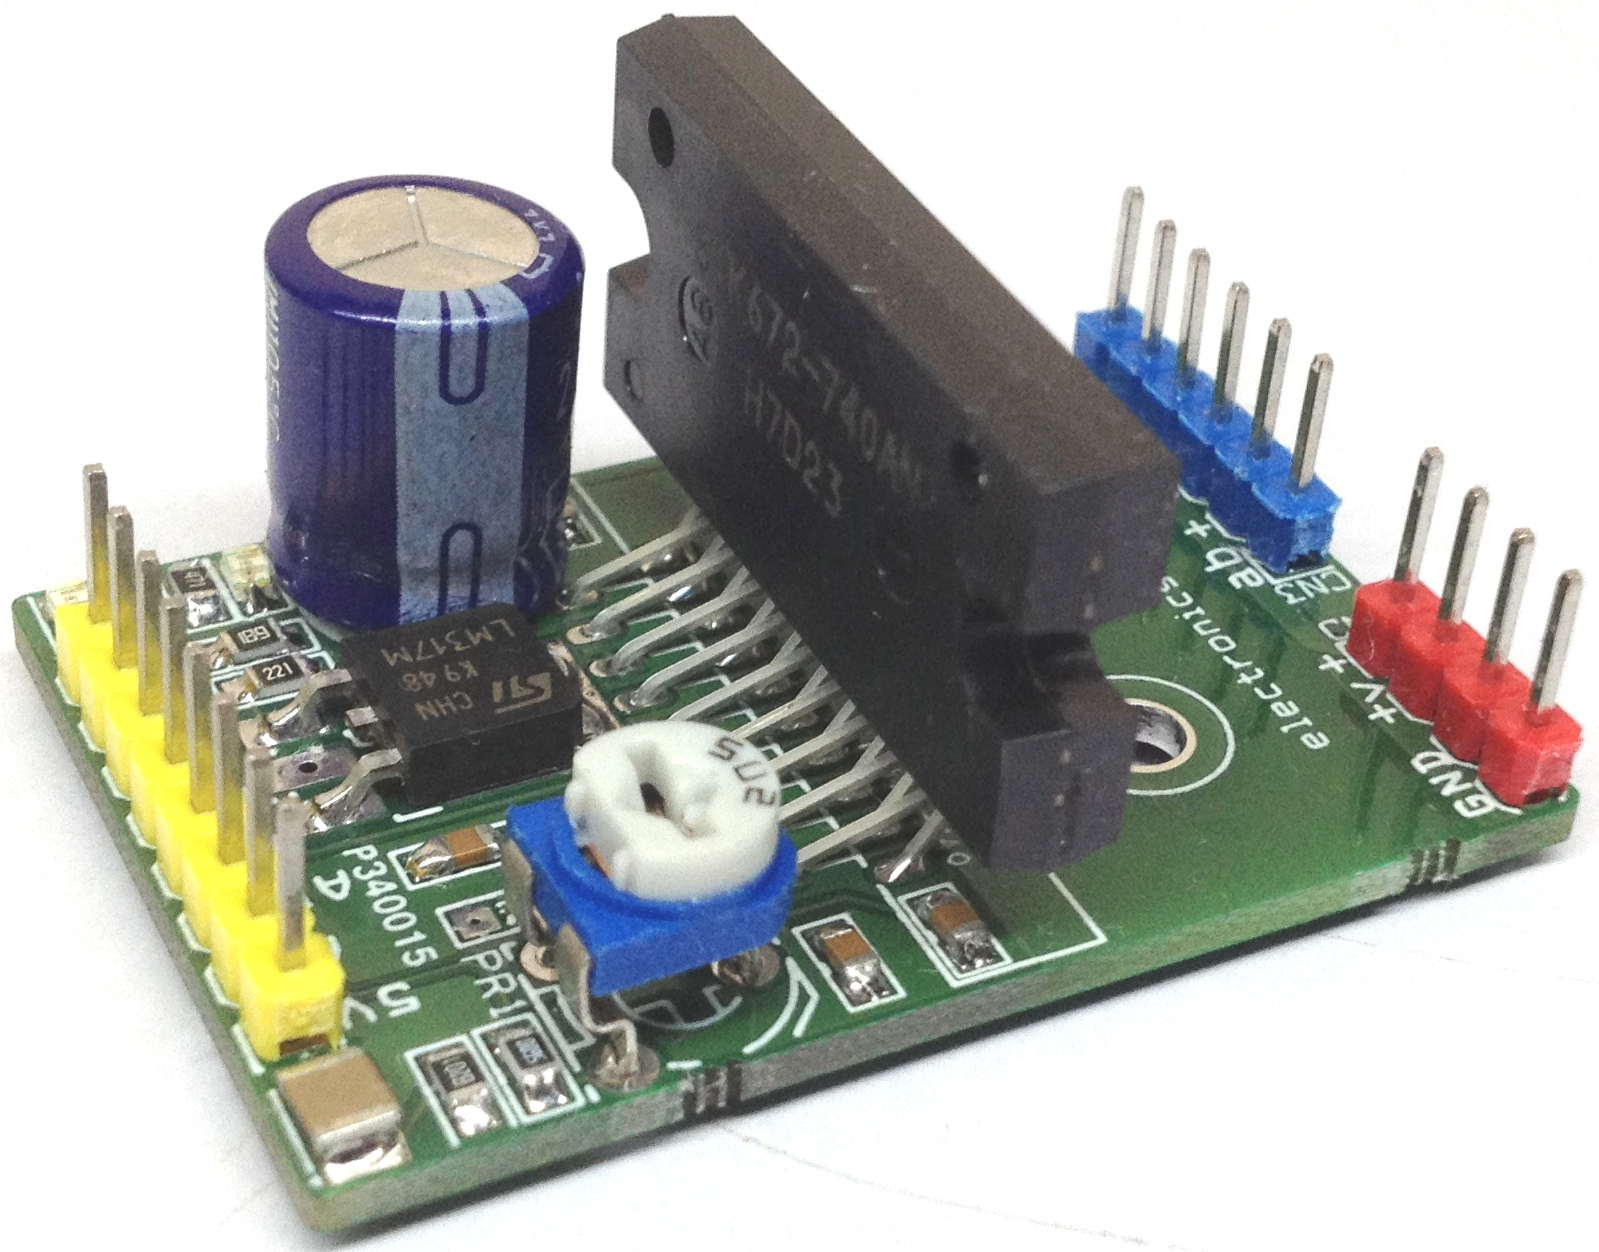 4A PWM Controlled Unipolar Stepper Motor Driver using STK672-740